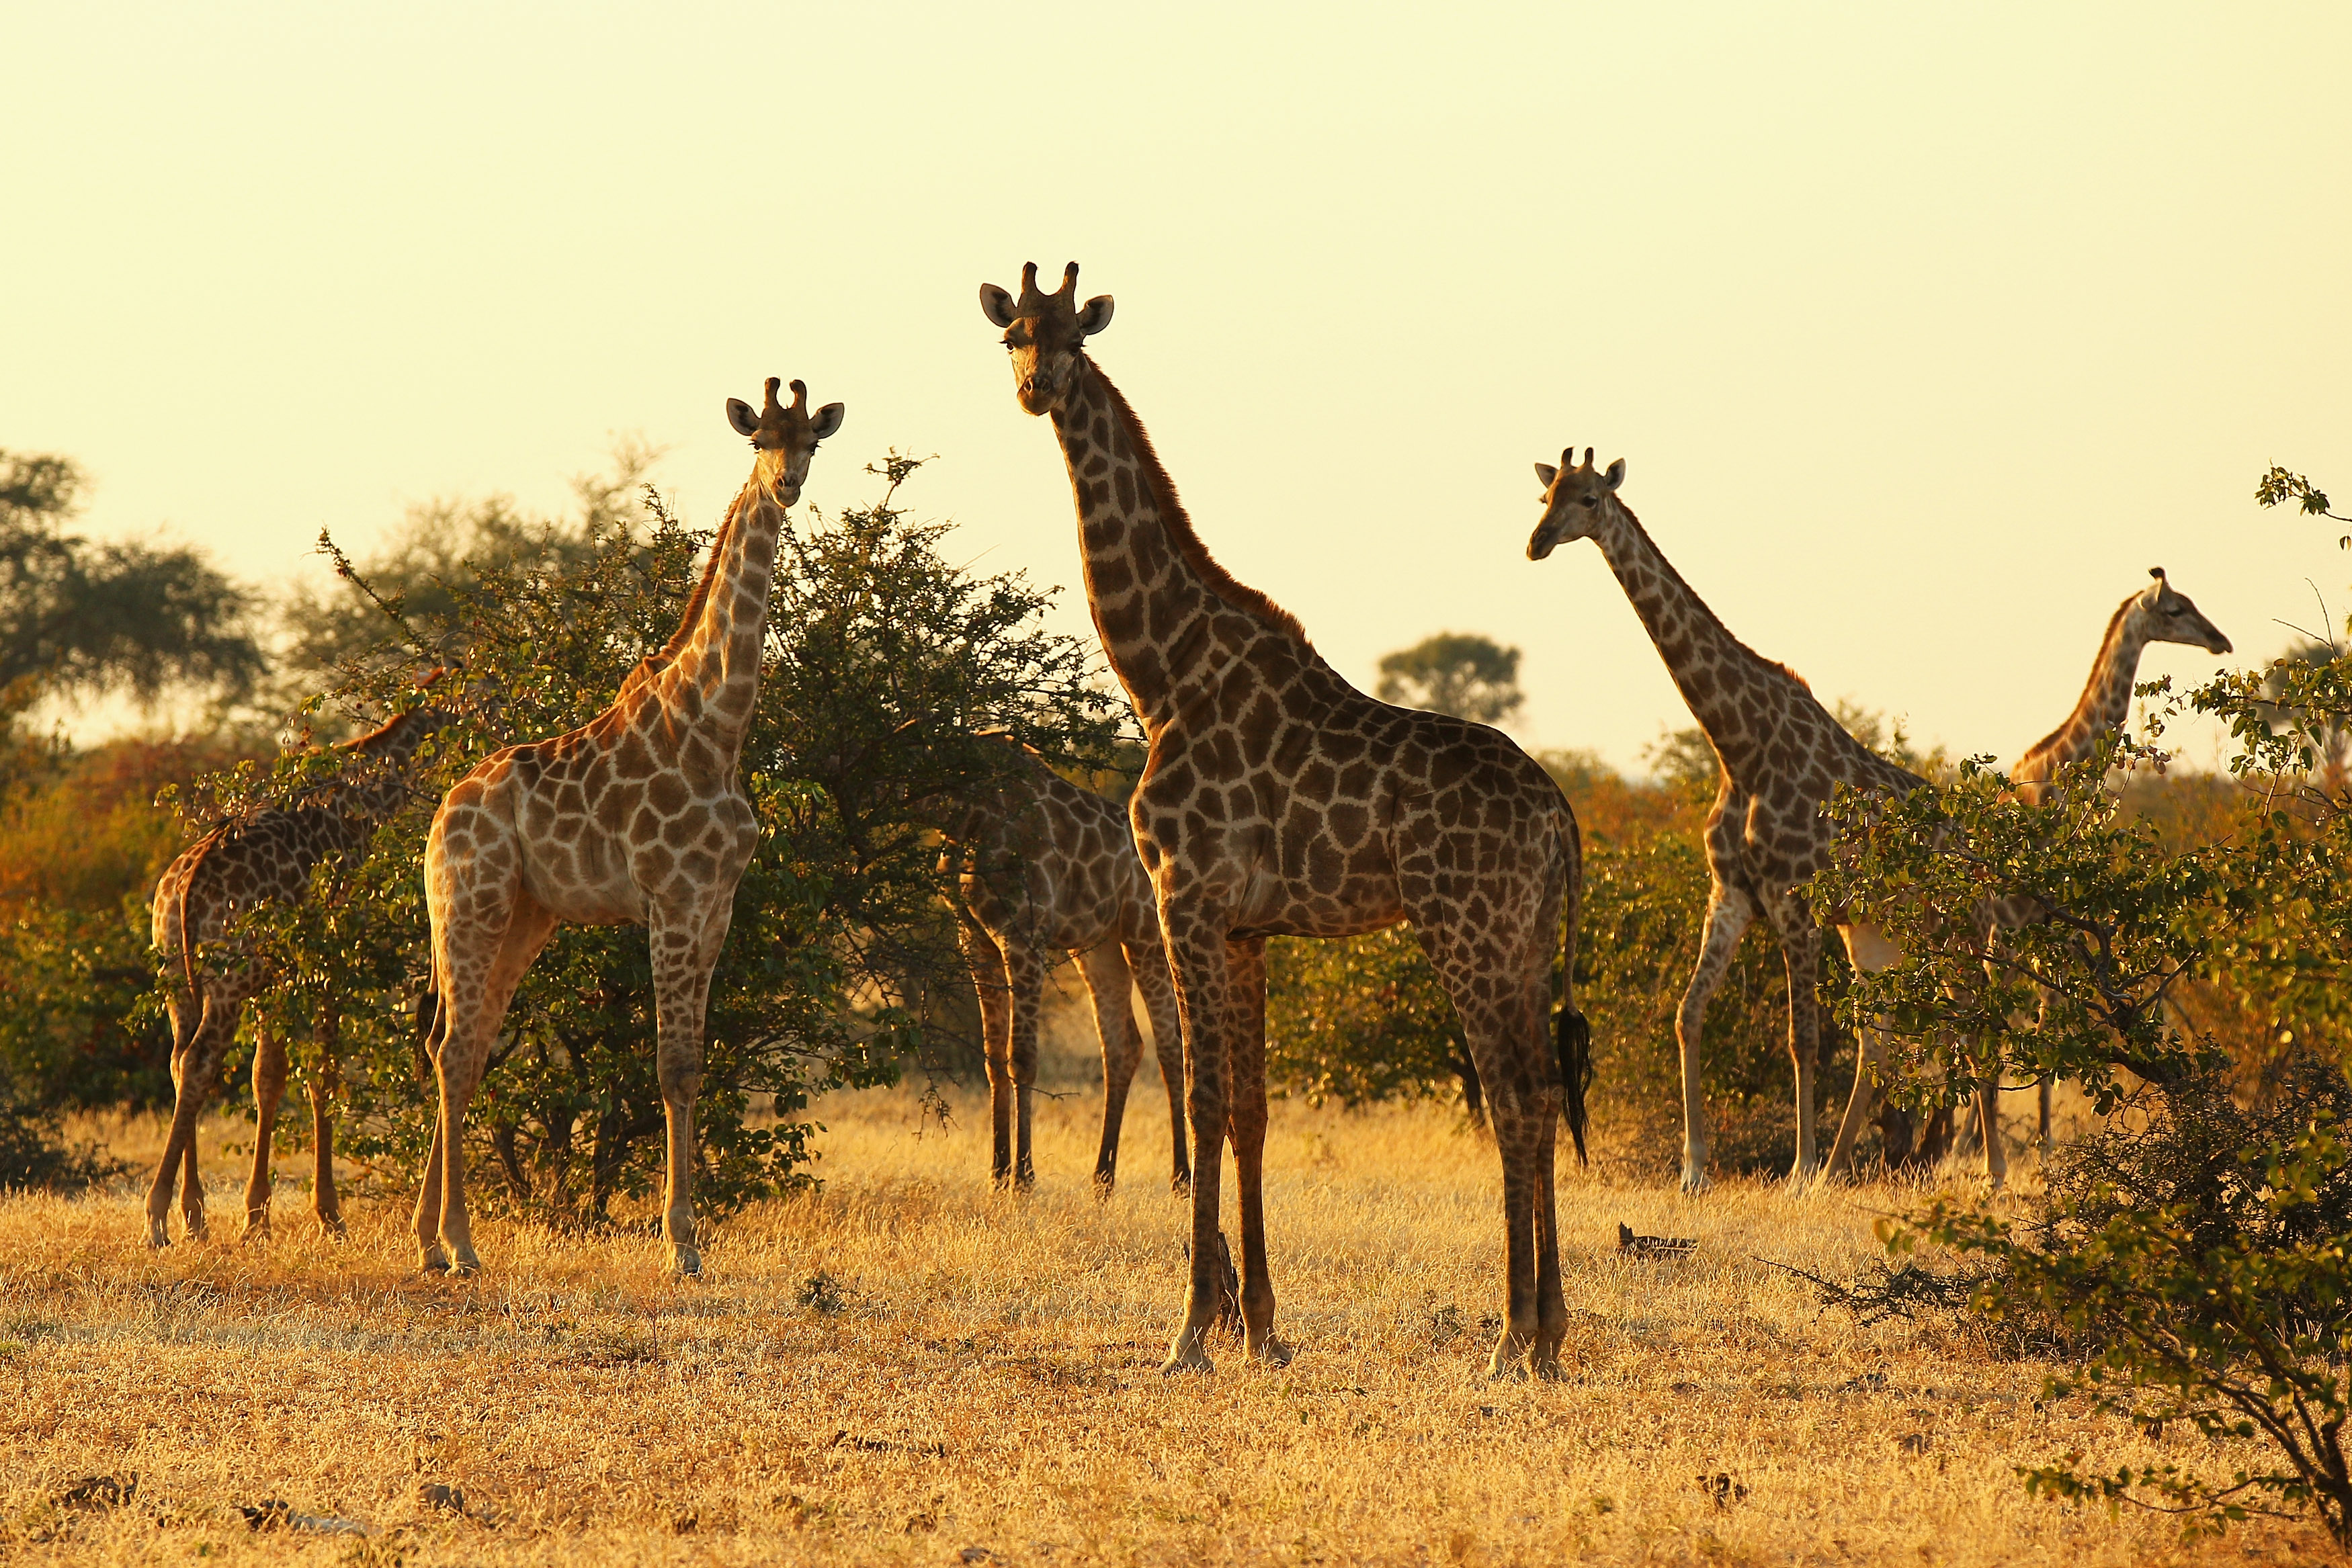 A tower of giraffes at sunrise in the Mashatu game reserve in Mapungubwe, Botswana, on July 27, 2010. (Cameron Spencer/Getty Images)